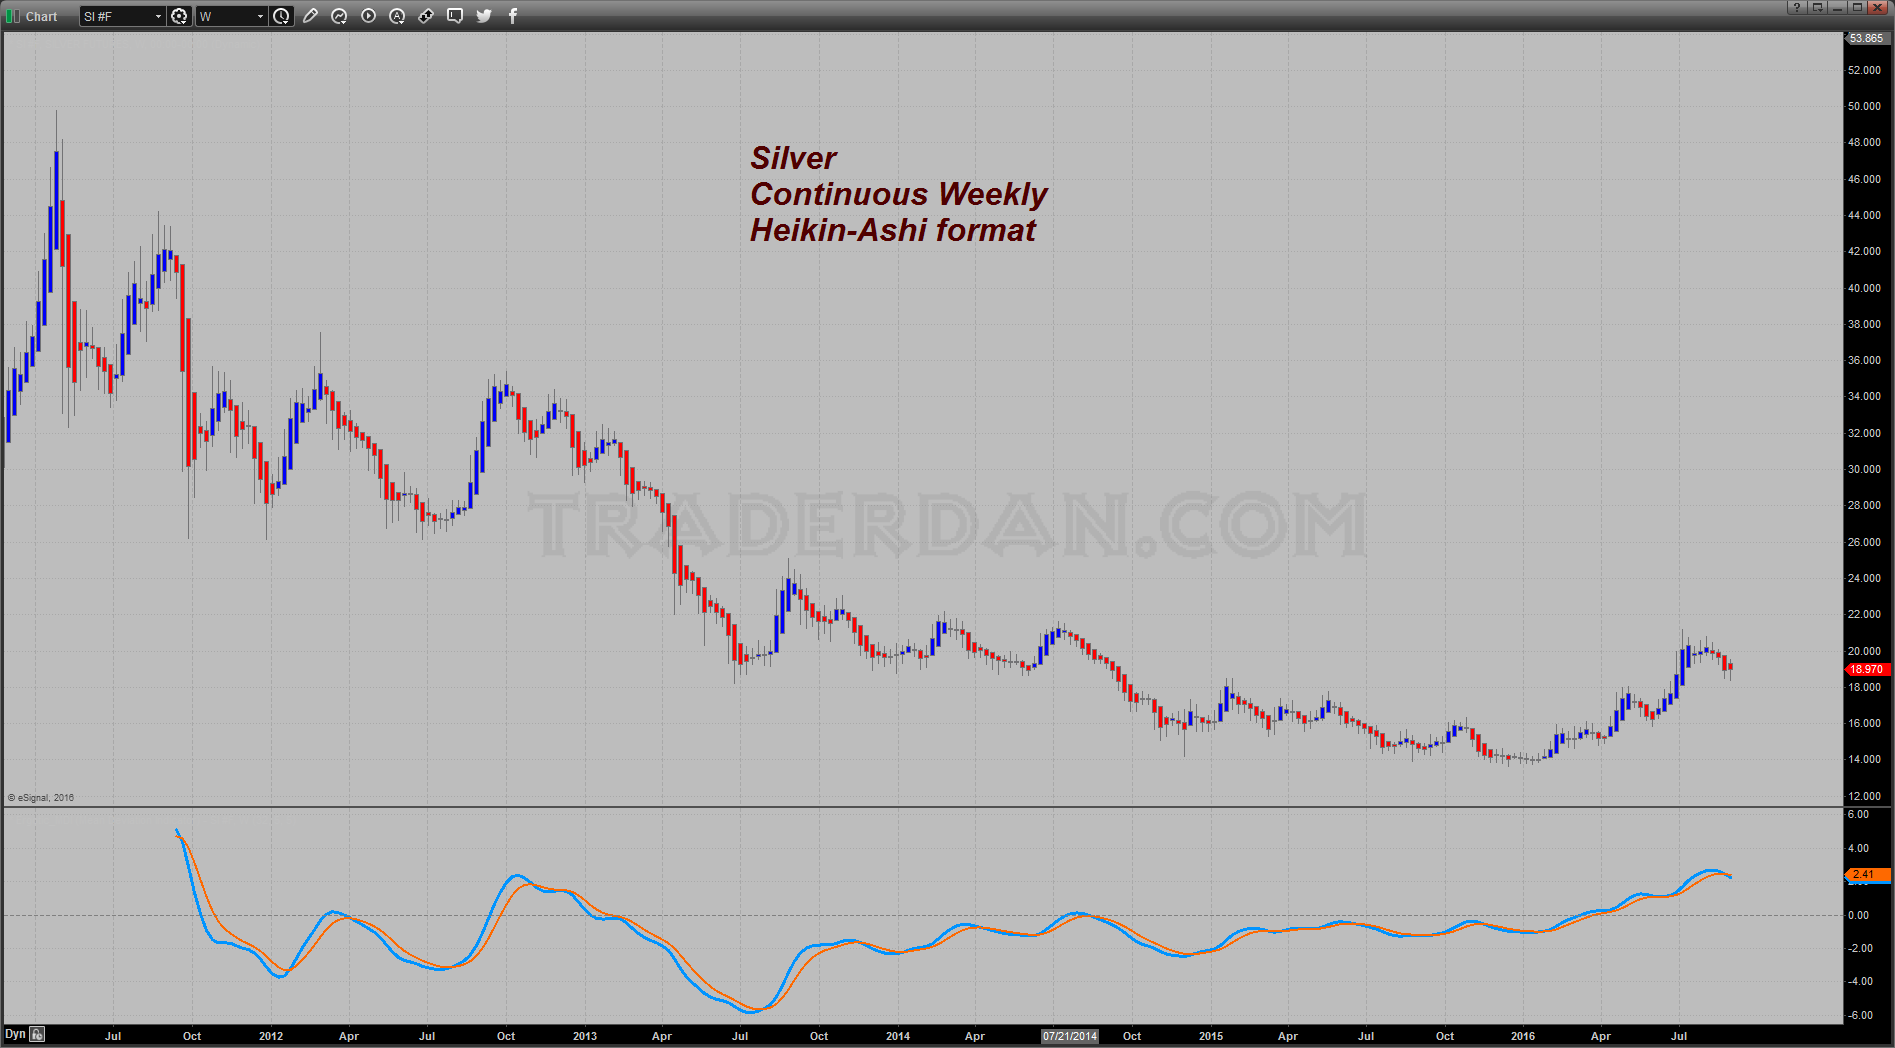 Silver Weekly 2012-2016